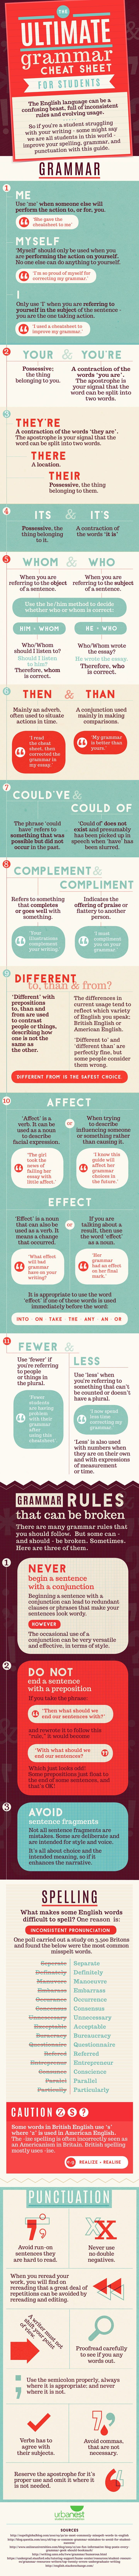 The Ultimate Grammar Cheat Sheet for Those Who Didn't Listen in School